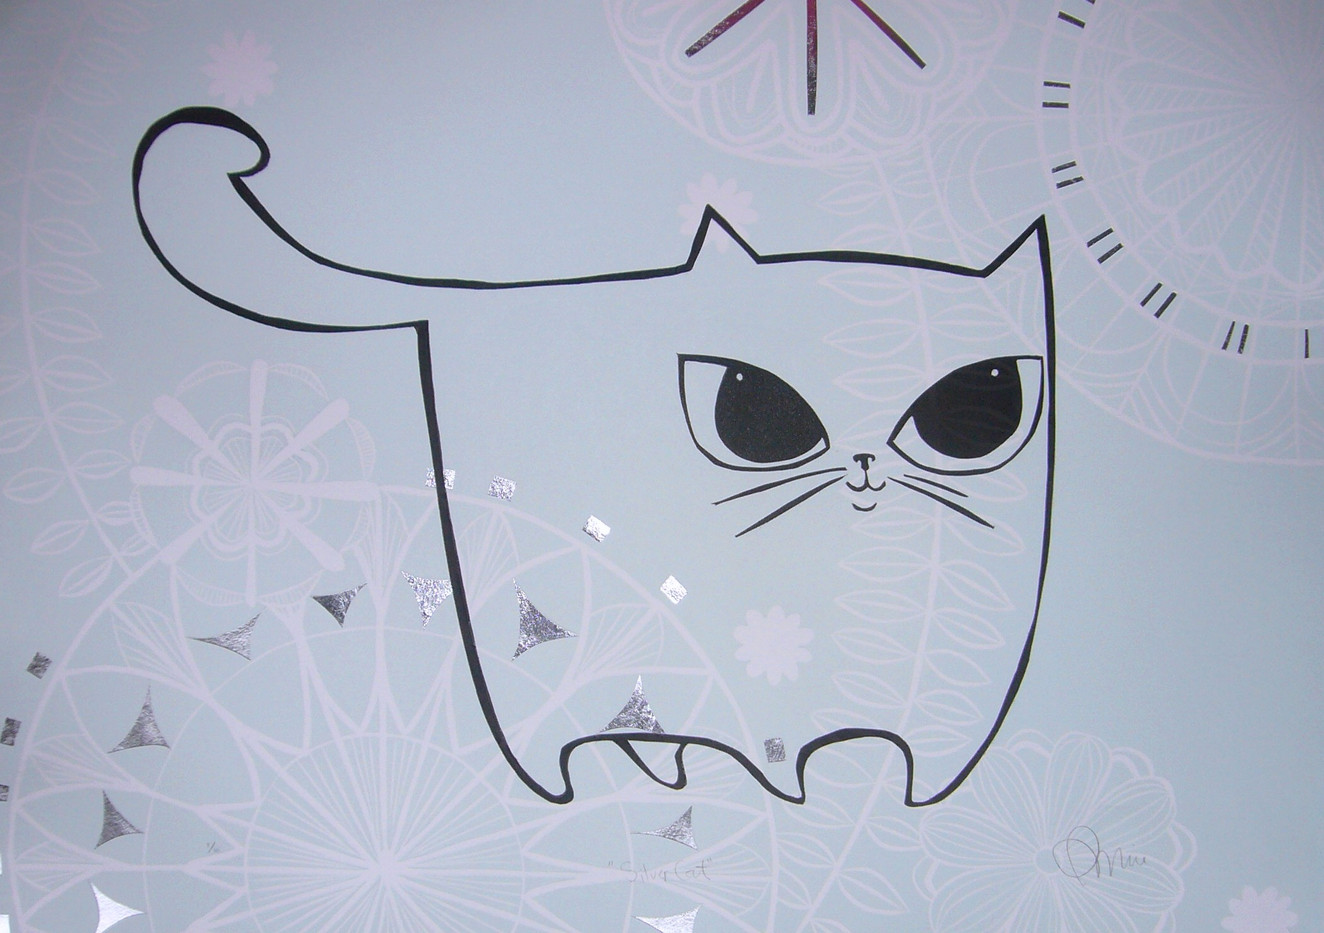 Silver Cat, wood cut print with silver leaf detail, 50 x 70cm